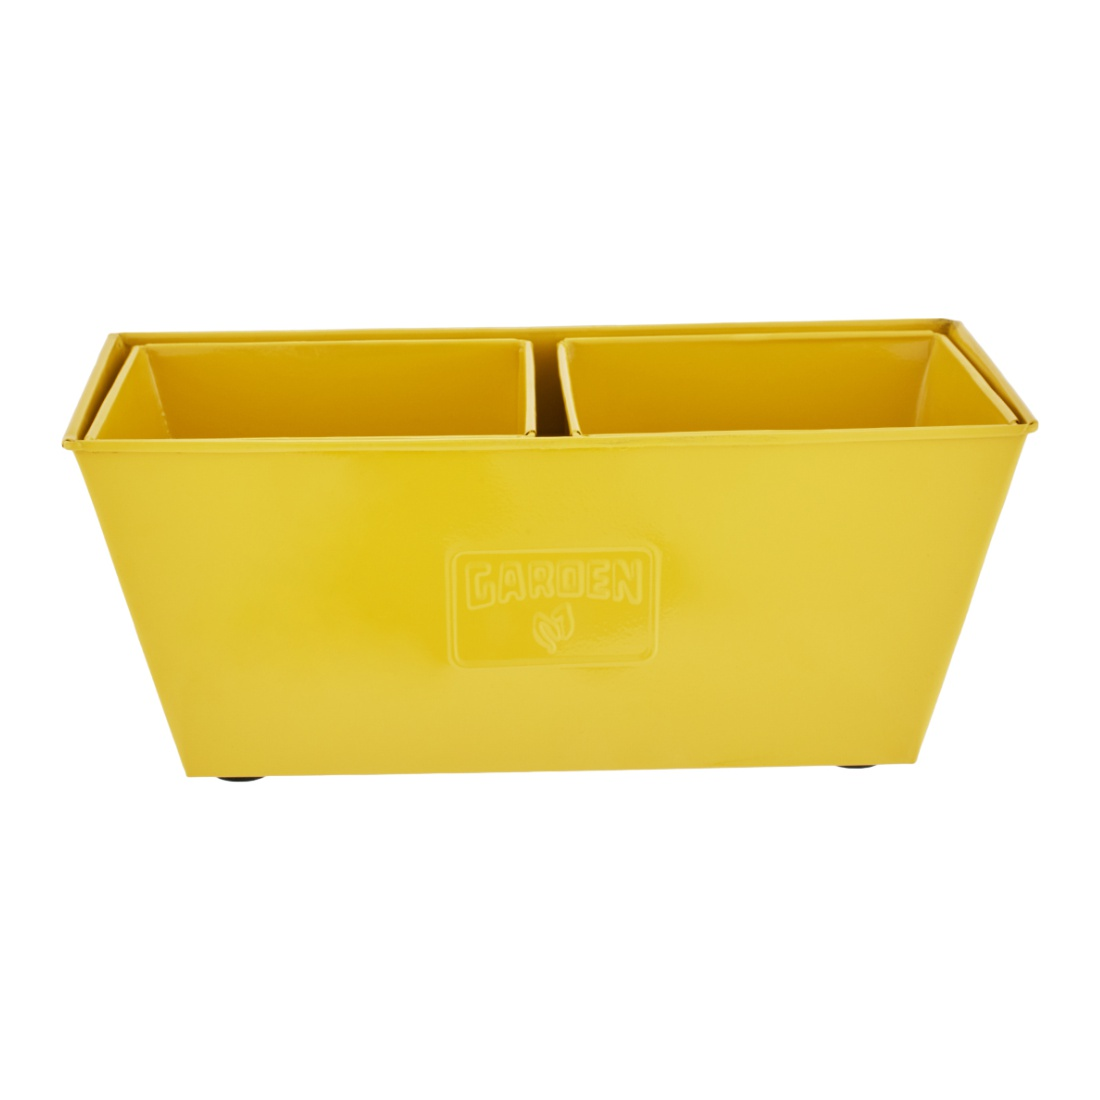 Aria Trapezium Planter Big Yellow Set of 3 Metal Pots & Planters in Yellow Colour by Living Essence